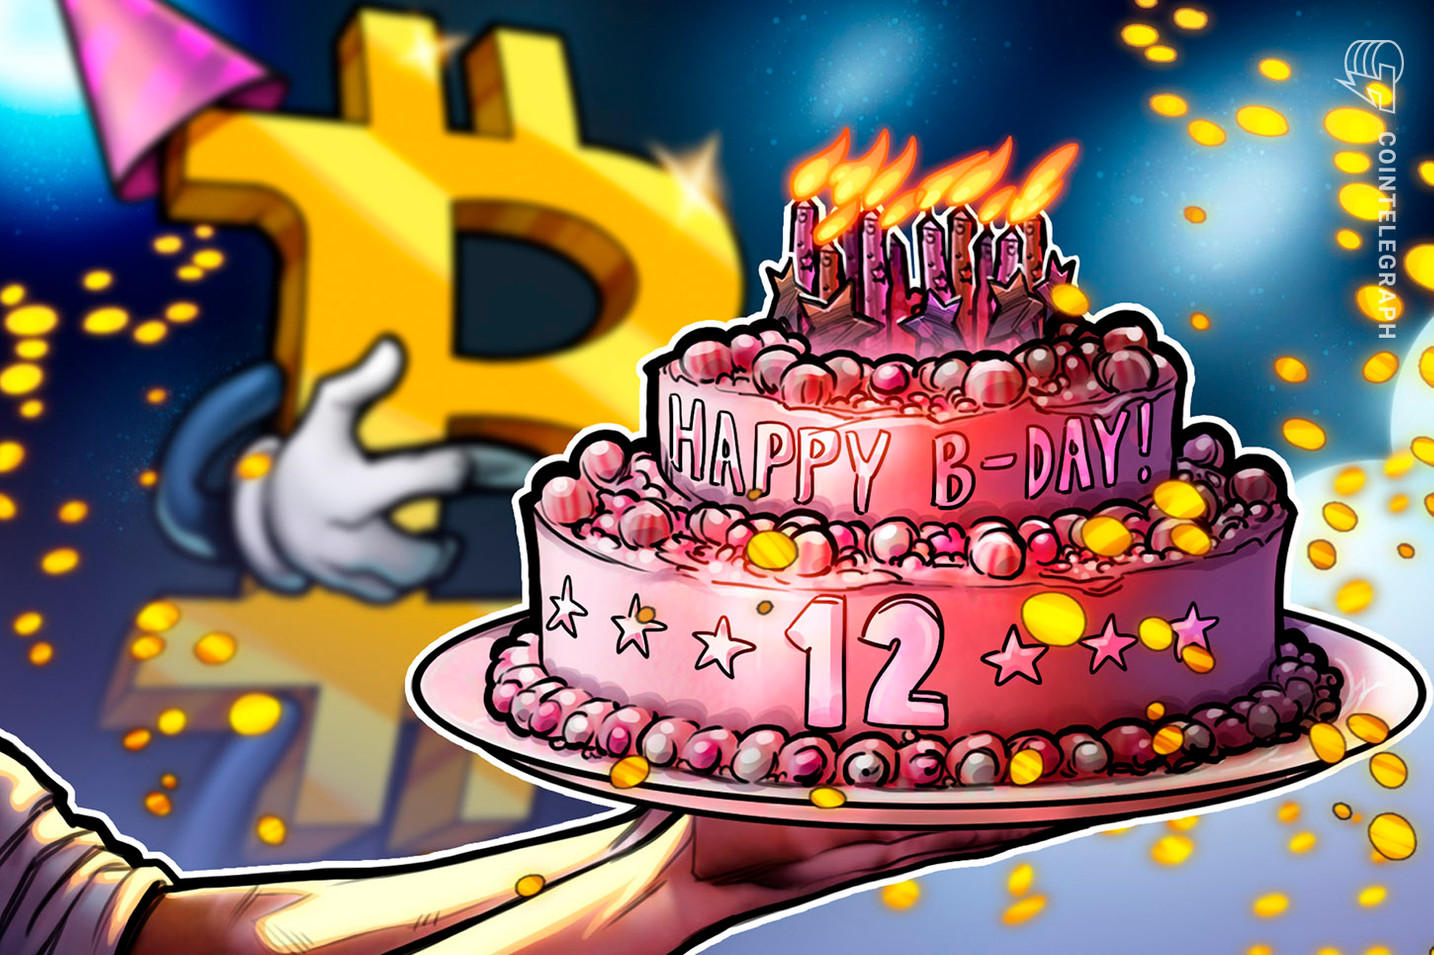 What industry leaders would wish for Bitcoin's white paper 12th anniversary